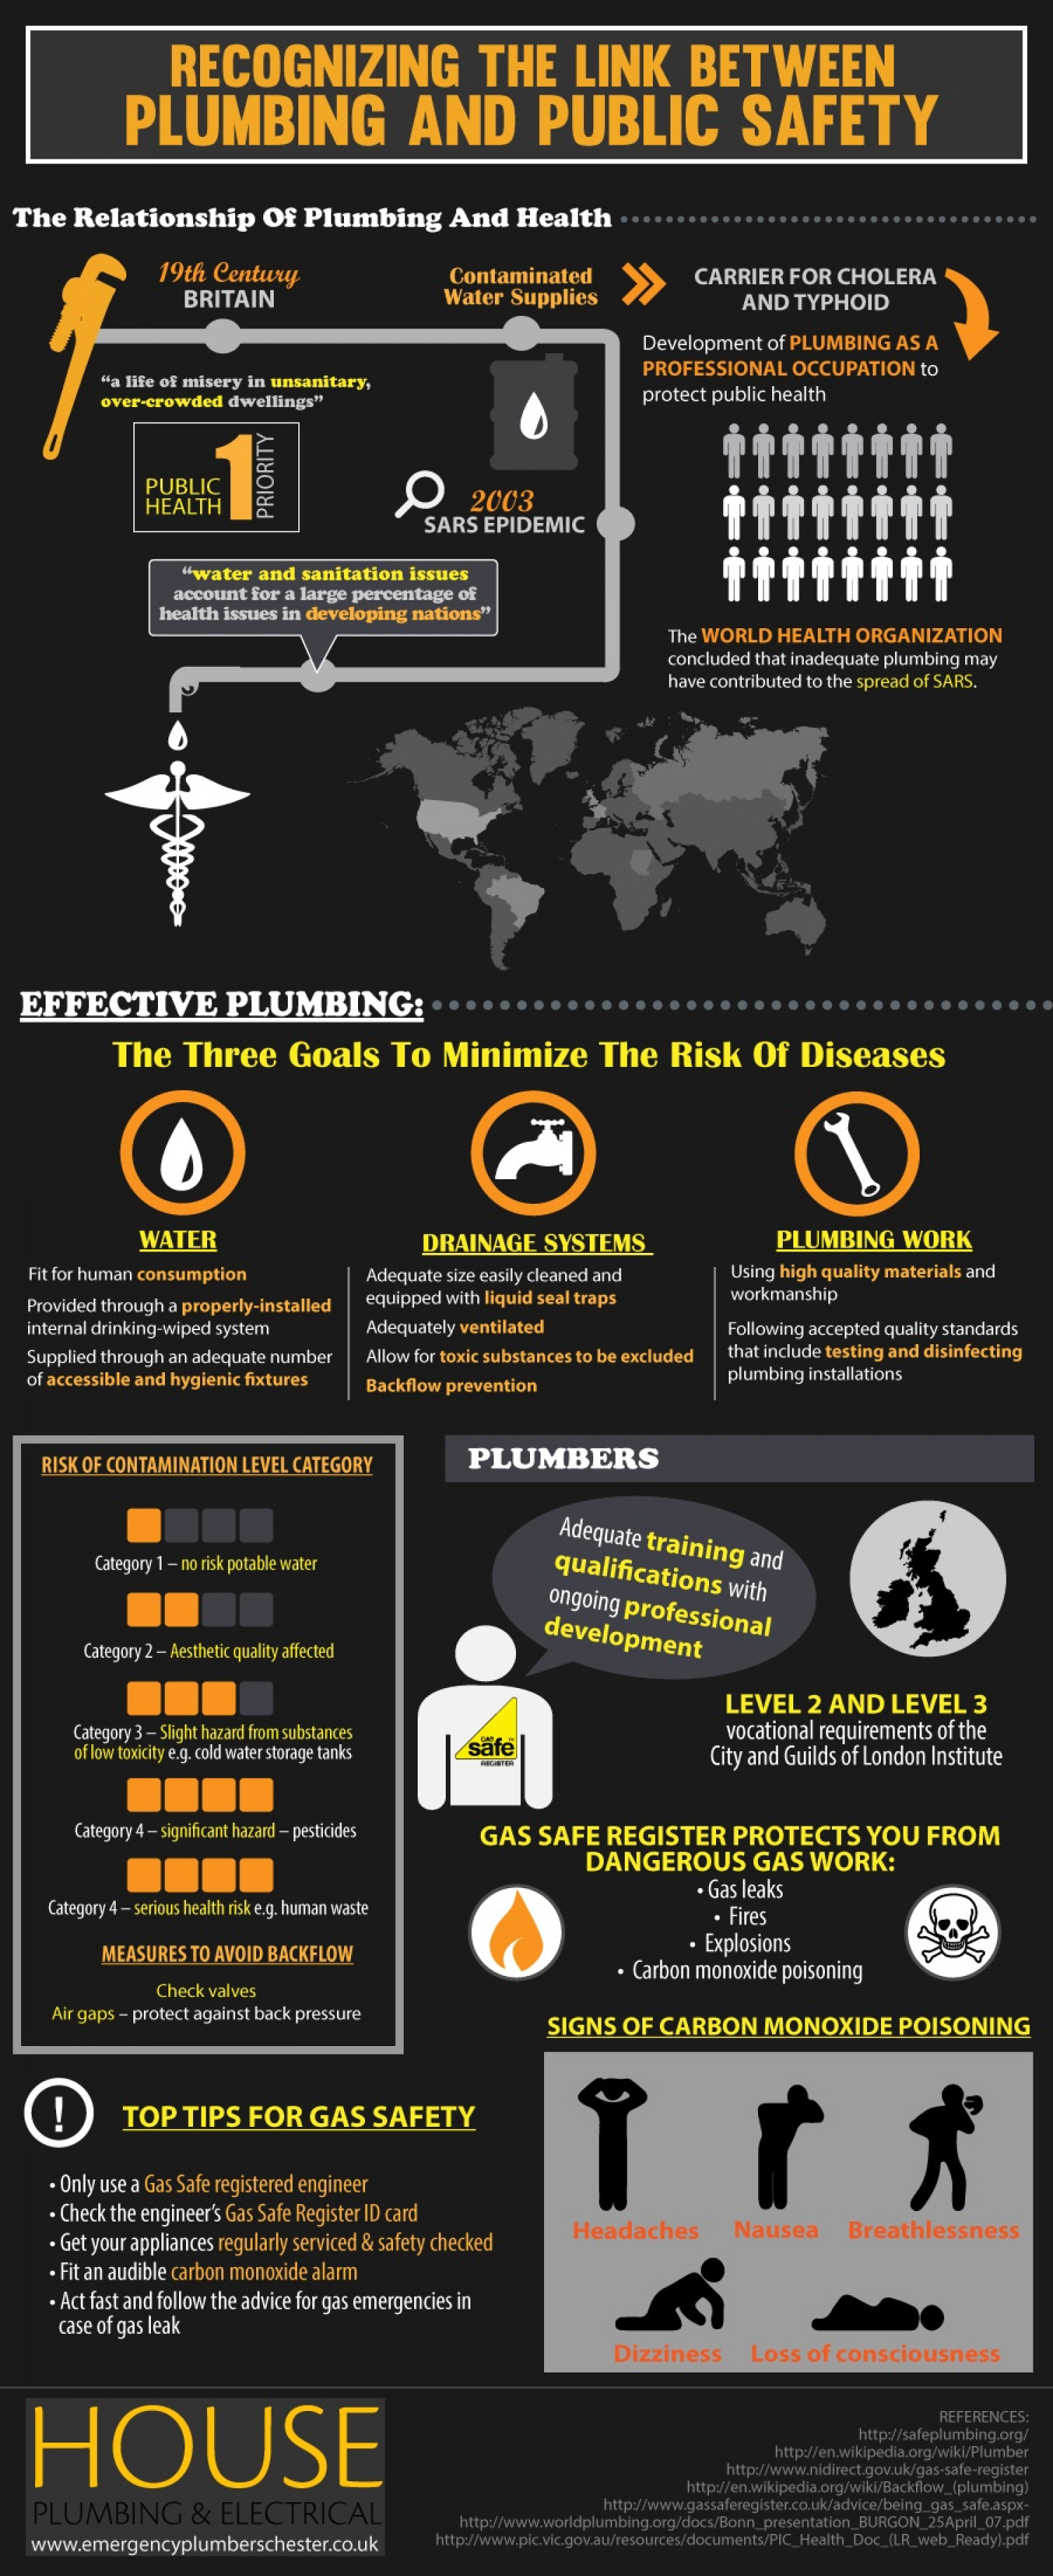 Recognizing The Link Between Plumbing And Public Safety Infographic